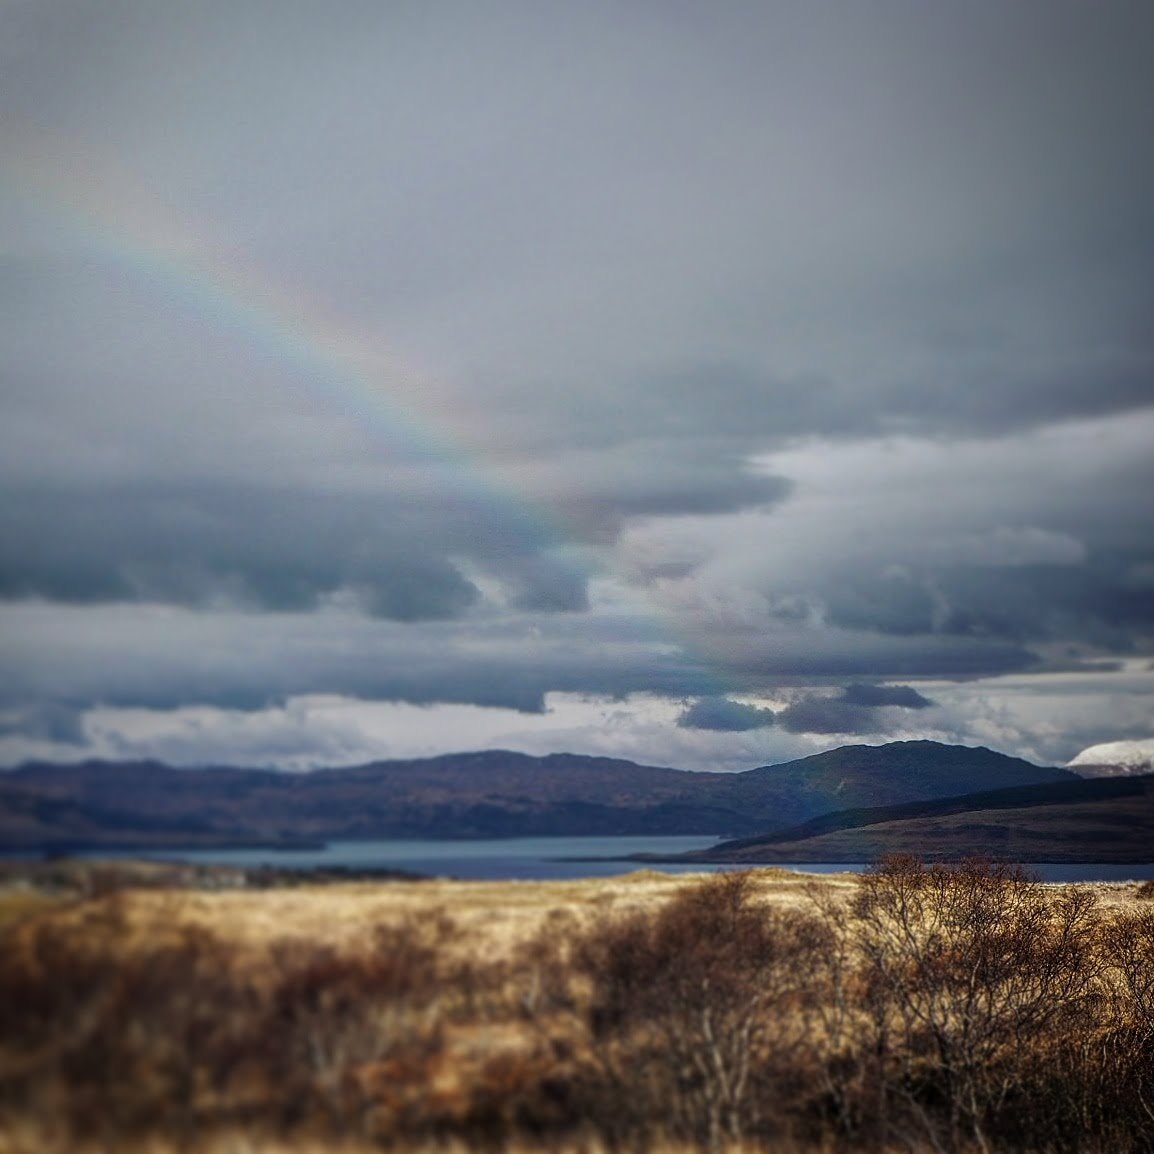 A rainbow view to the mainland over Mull